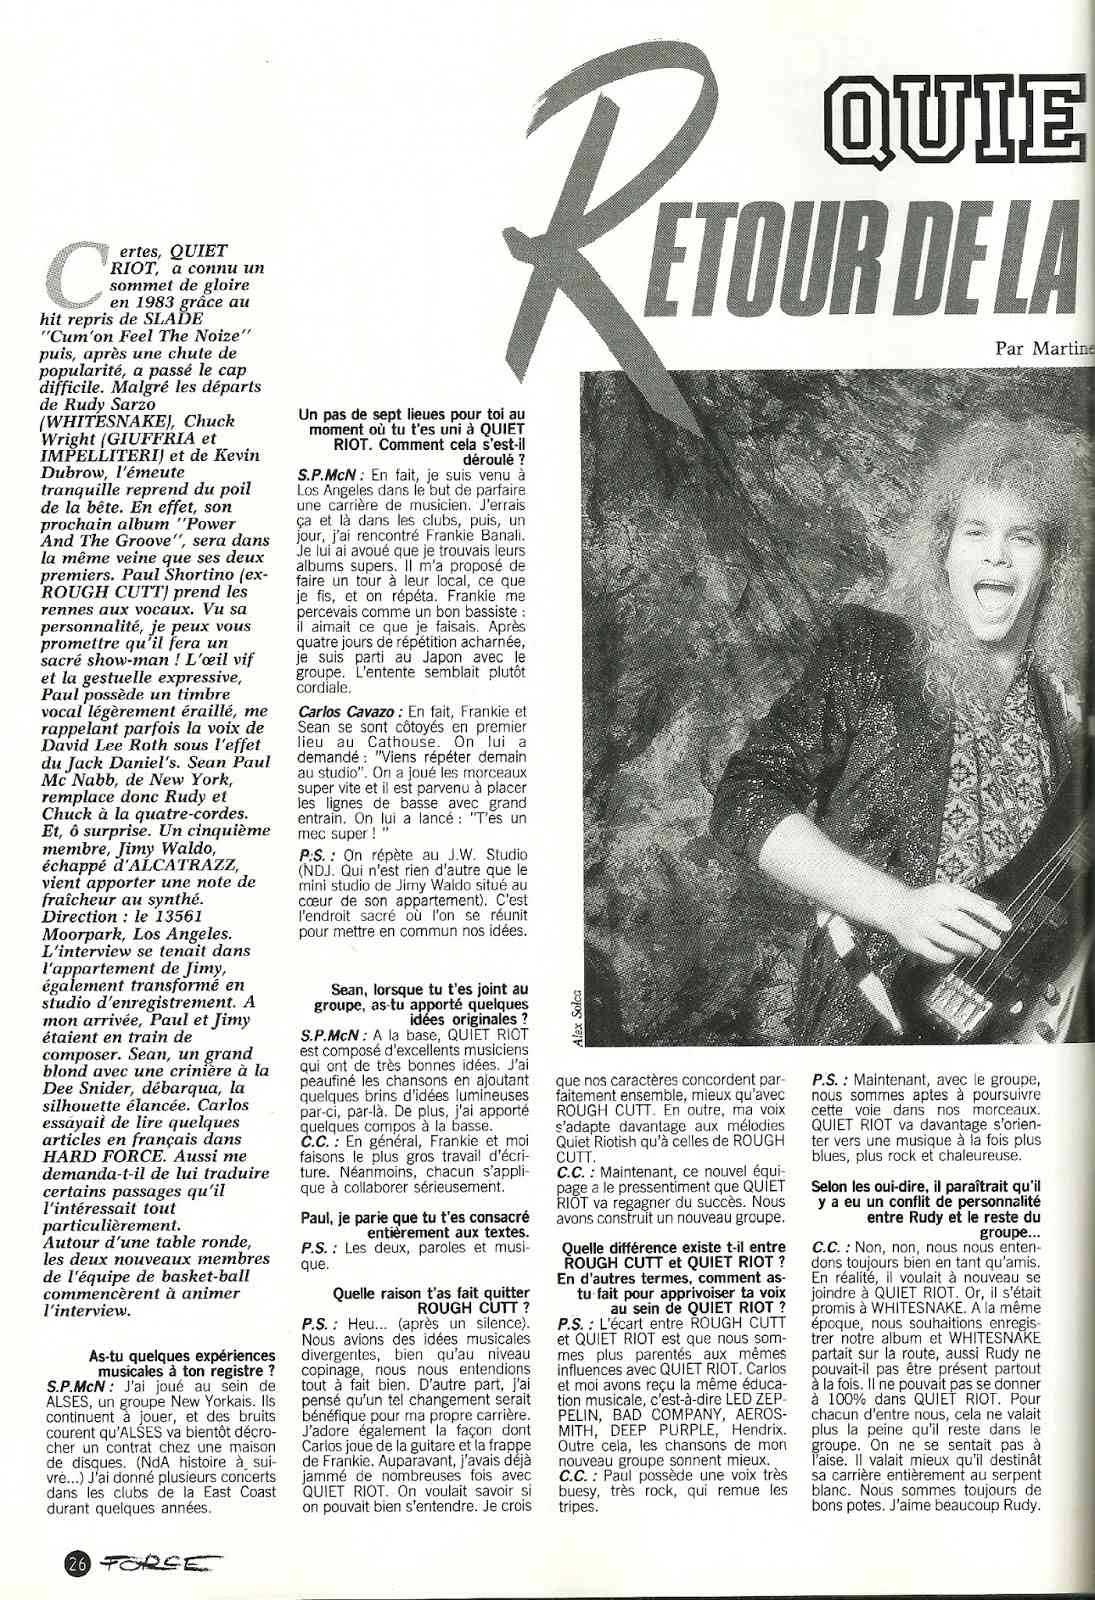 QUIET RIOT Retour de la Force Tranquille (HARD FORCE Septembre 1988) Archive à lire Numyri46